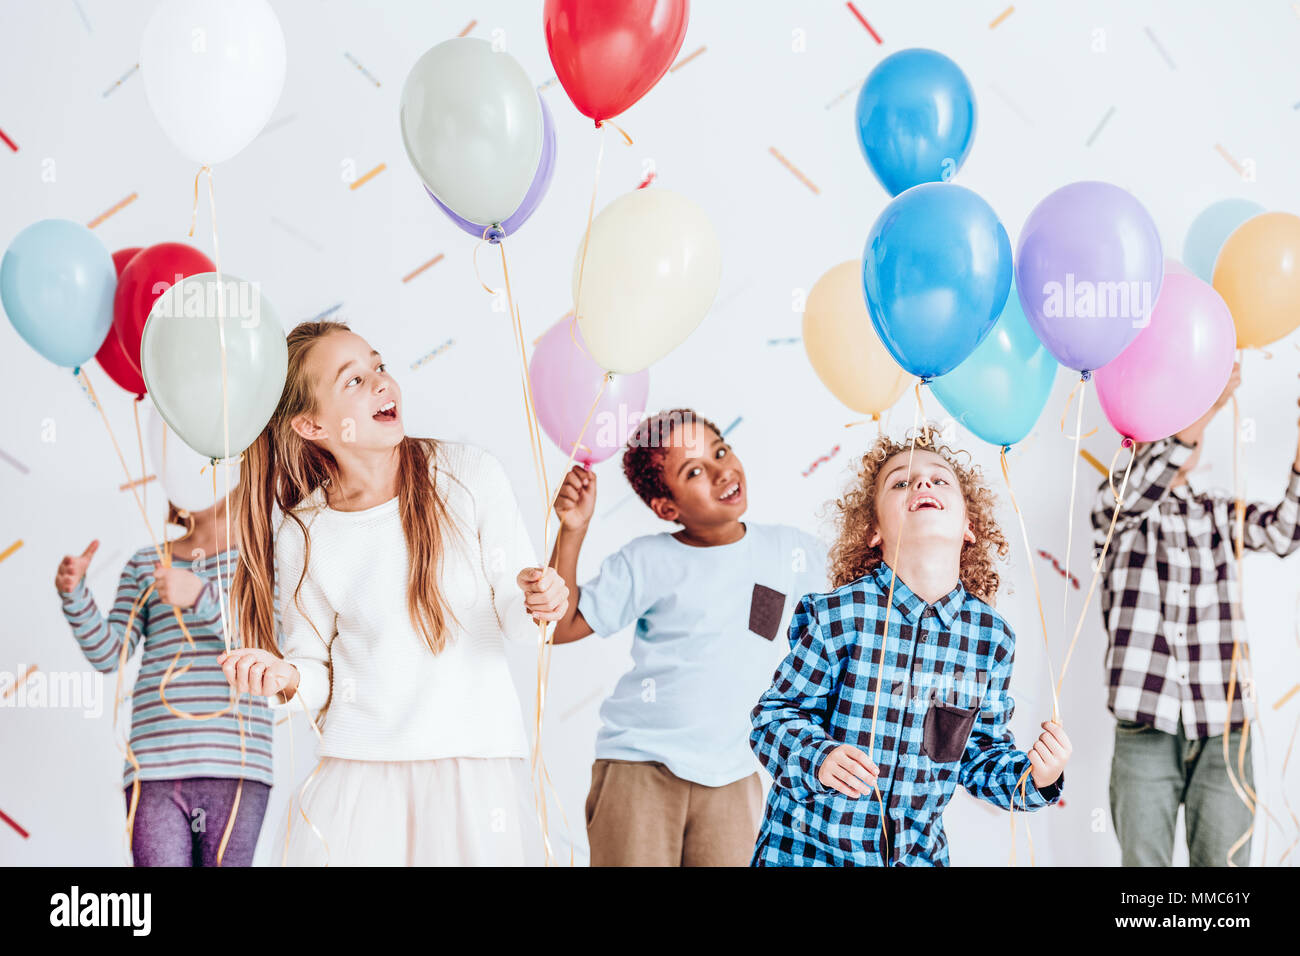 Group of kids having a party and dancing with balloons in their hands - Stock Image